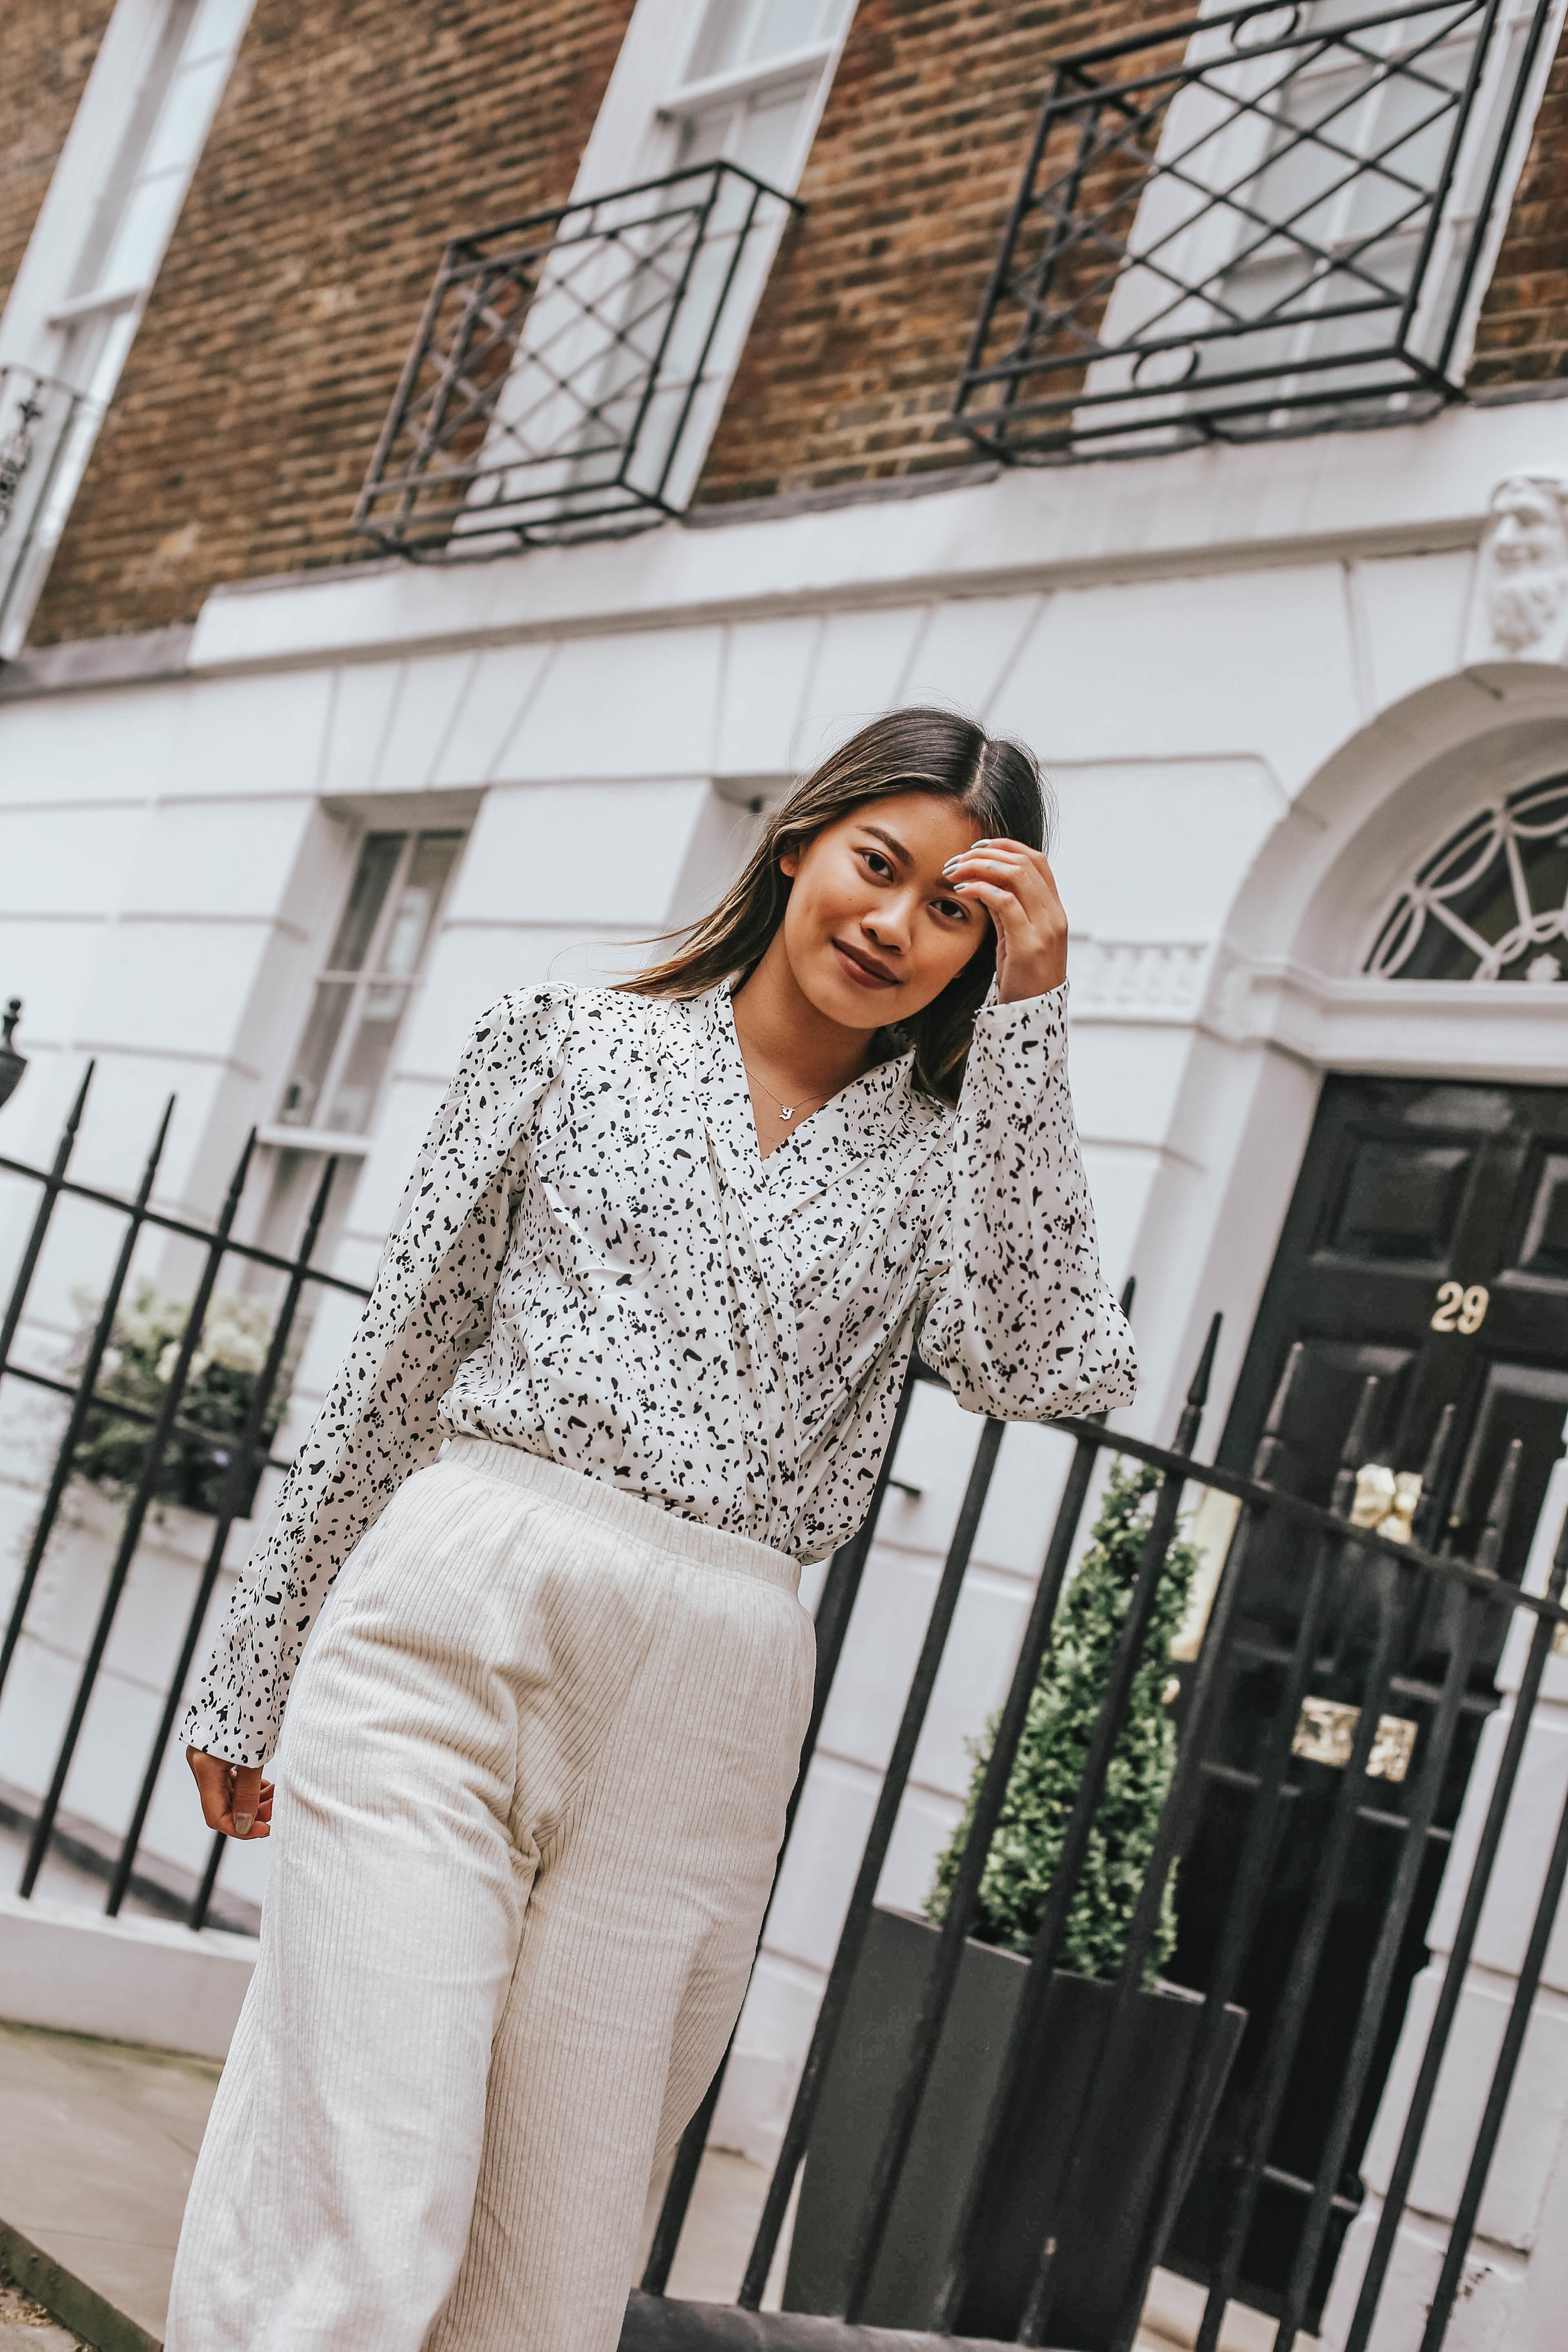 I've paired this beautiful wrapped blouse with a cord culotte trouser to add another layer of texture to make the outfit more playful -